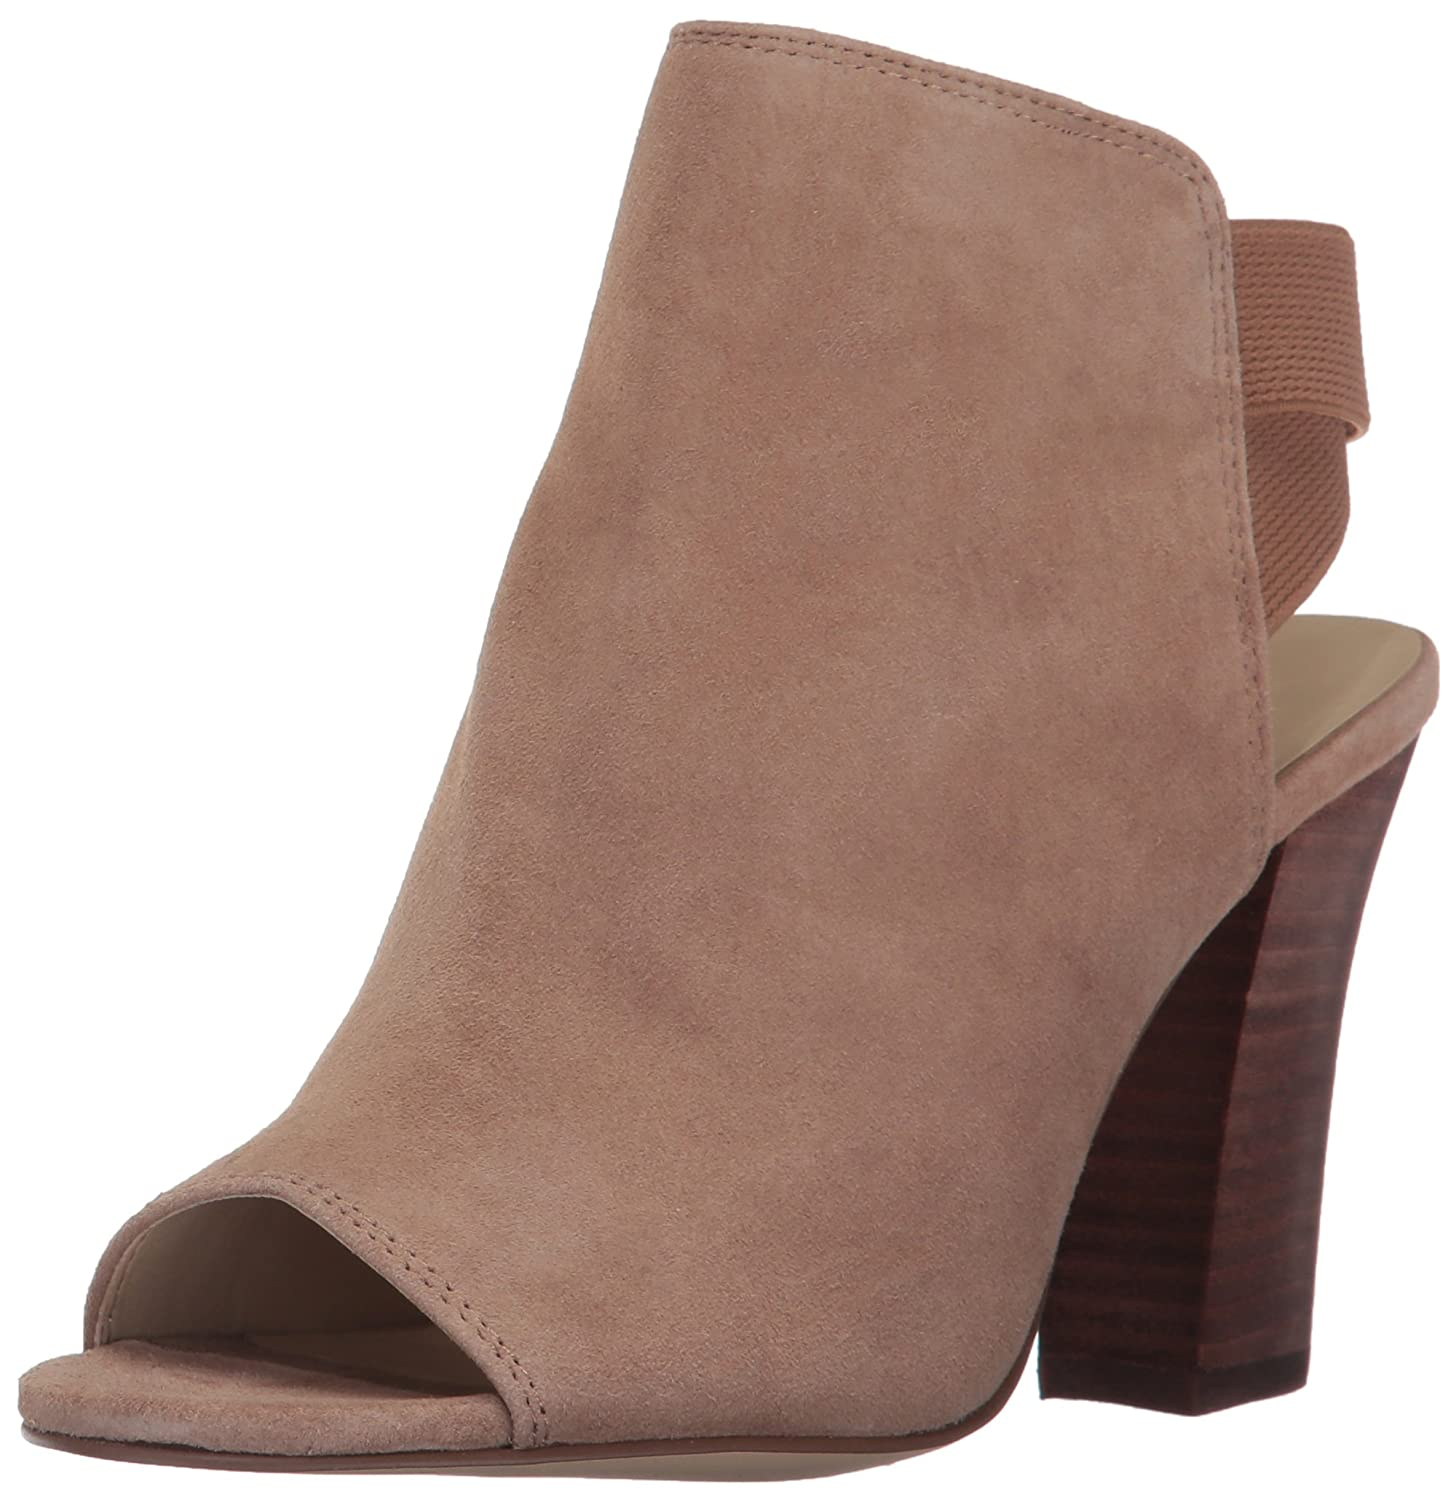 Nine West Women's Zofee Suede Ankle Boot B01NBELCO6 11 B(M) US|Natural